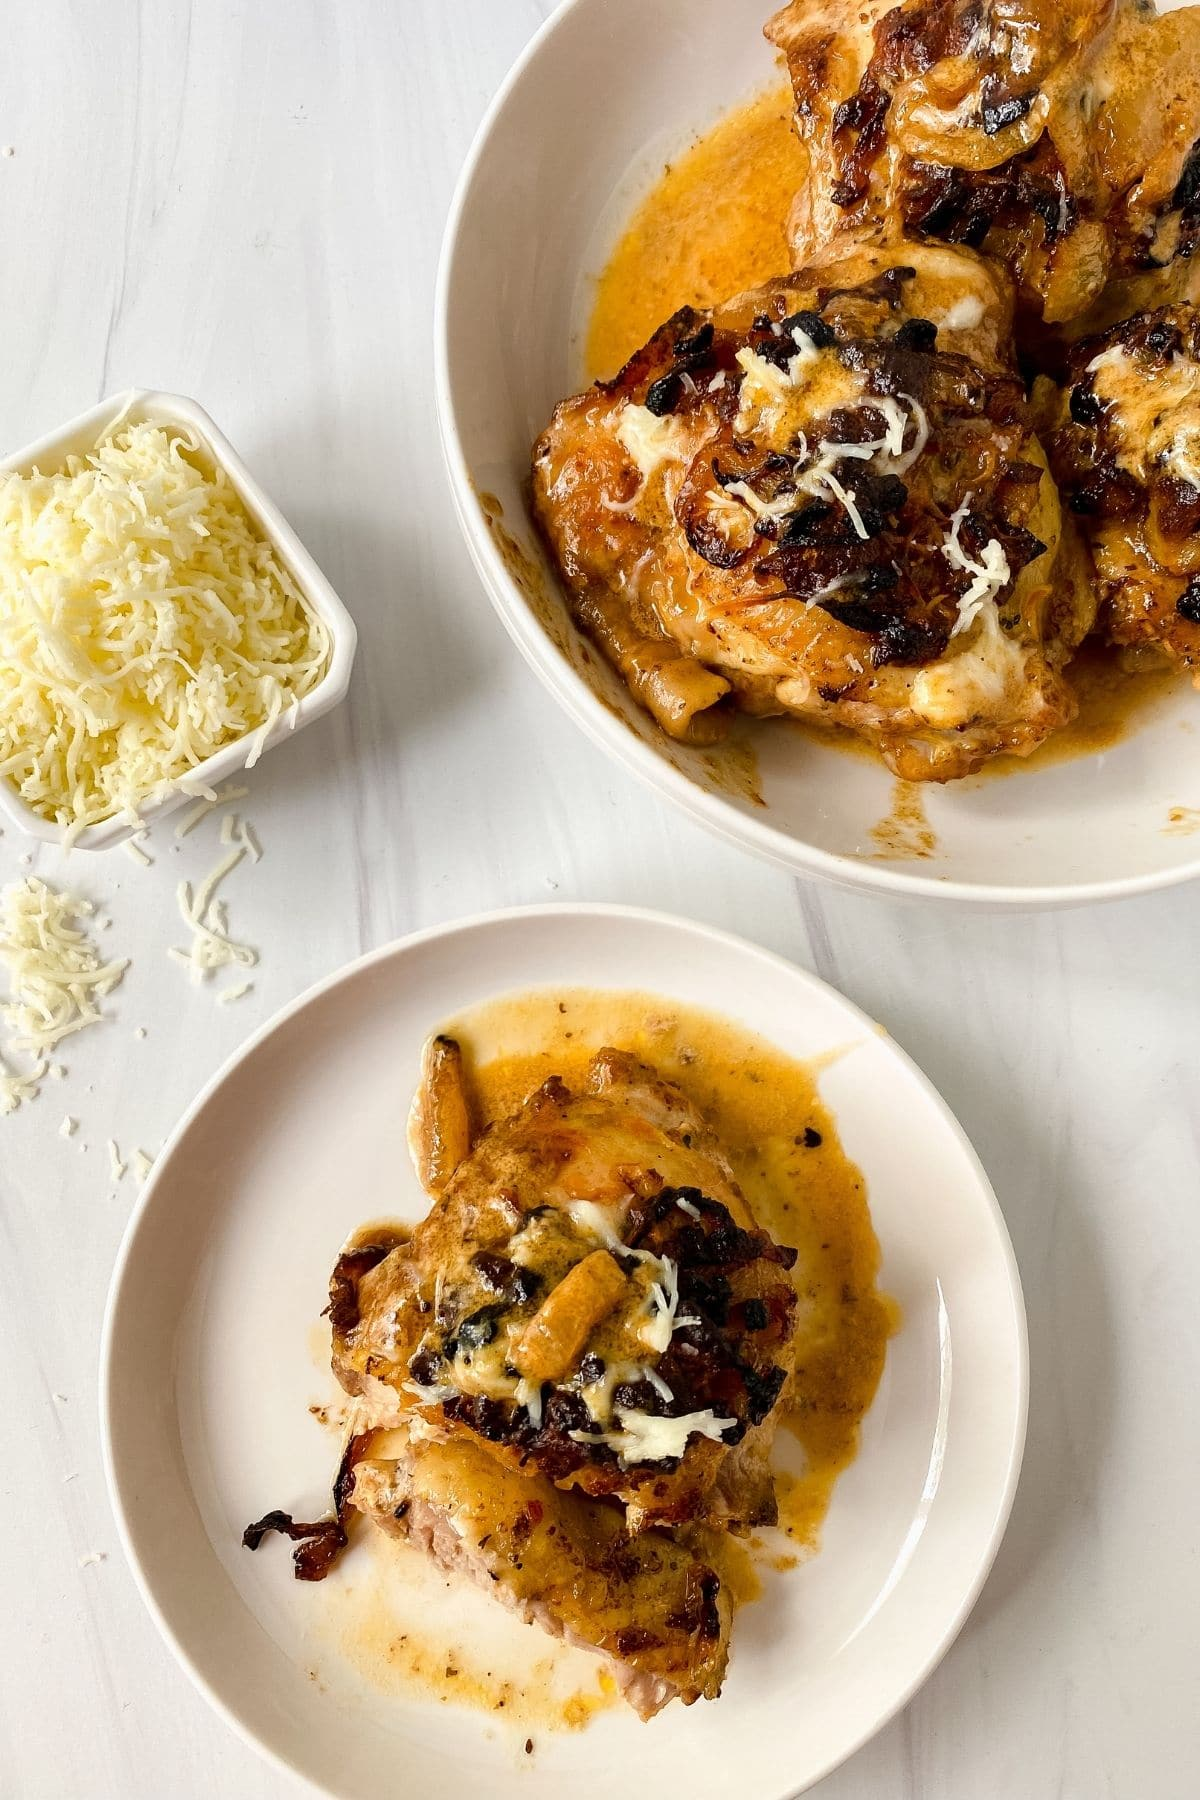 chicken thighs in sauce on white plates by bowl of parmesan